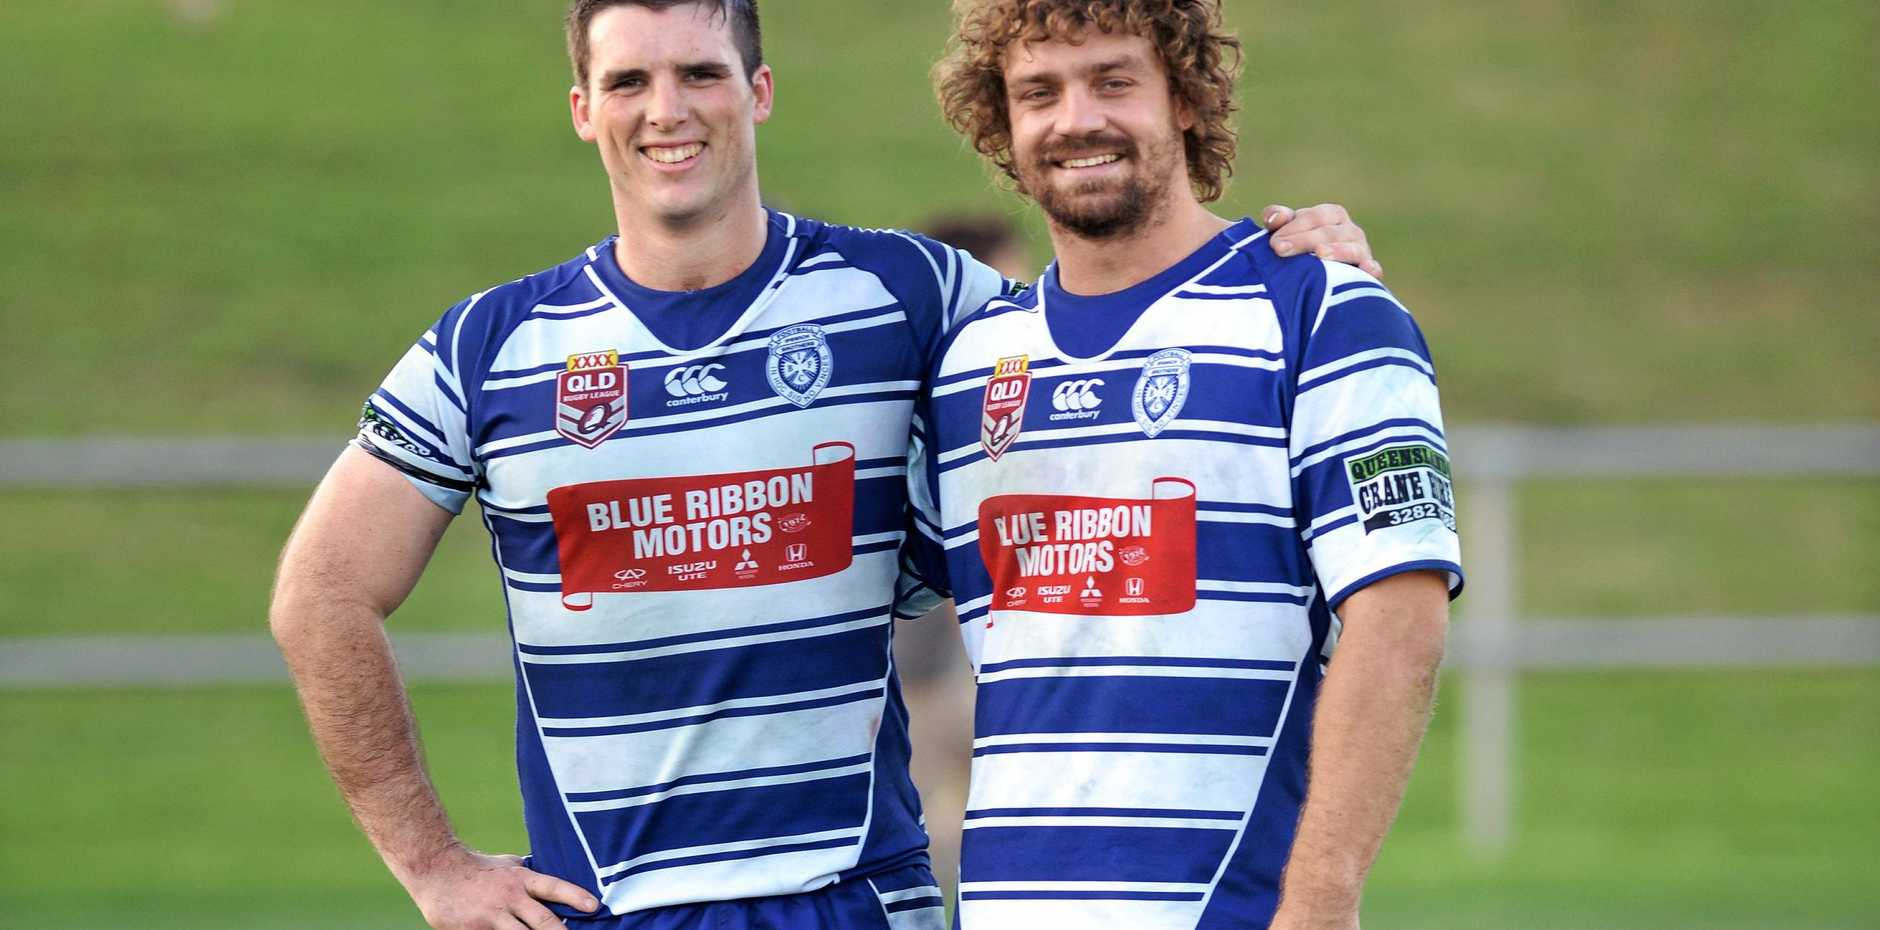 BROTHERS IN ARMS: Ex- Brothers player Matt Hamill alongside Beau Yates who is back in blue and white this season. Photo: Rob Williams / The Queensland Times